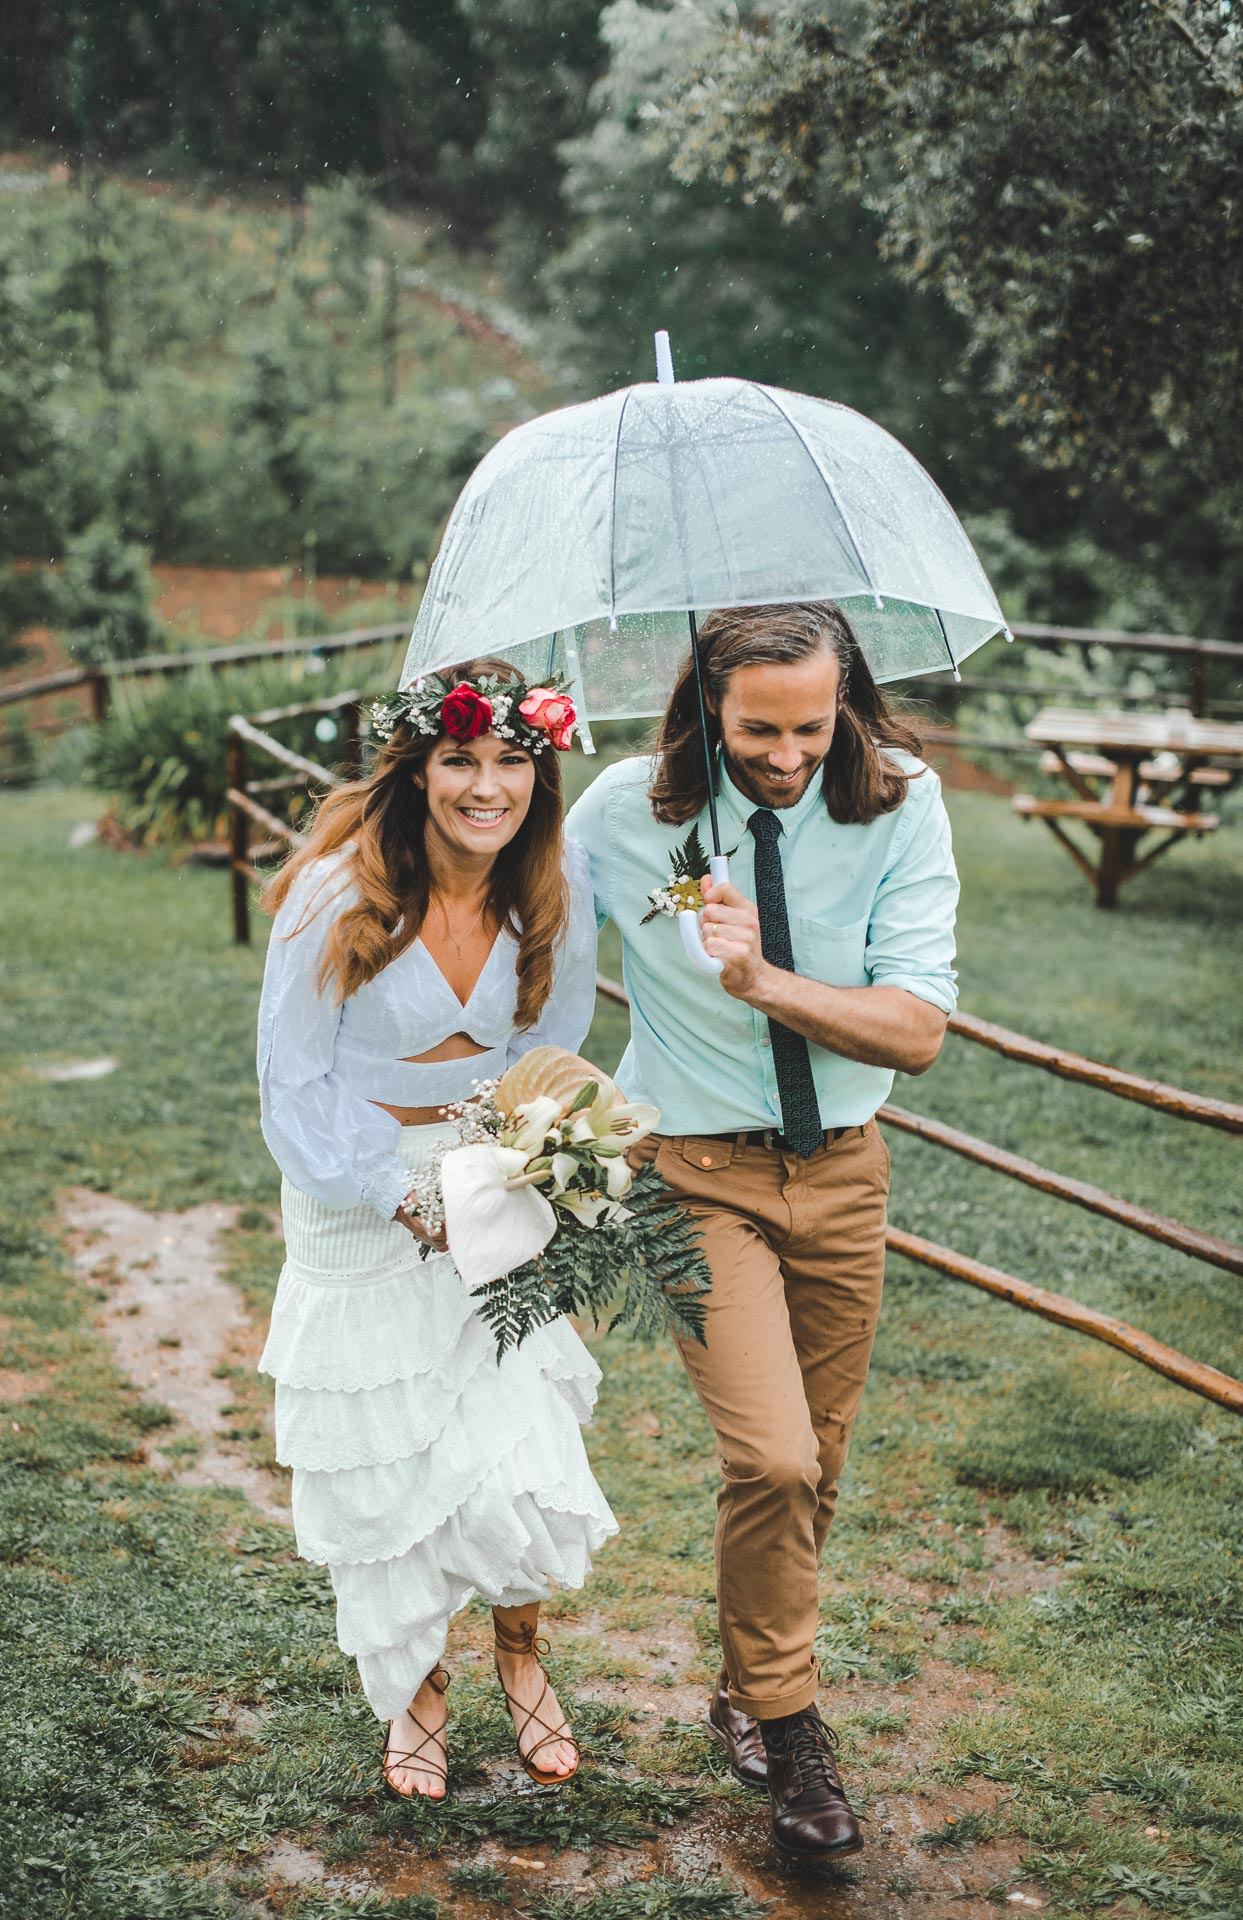 rainy wedding portugal porto photography